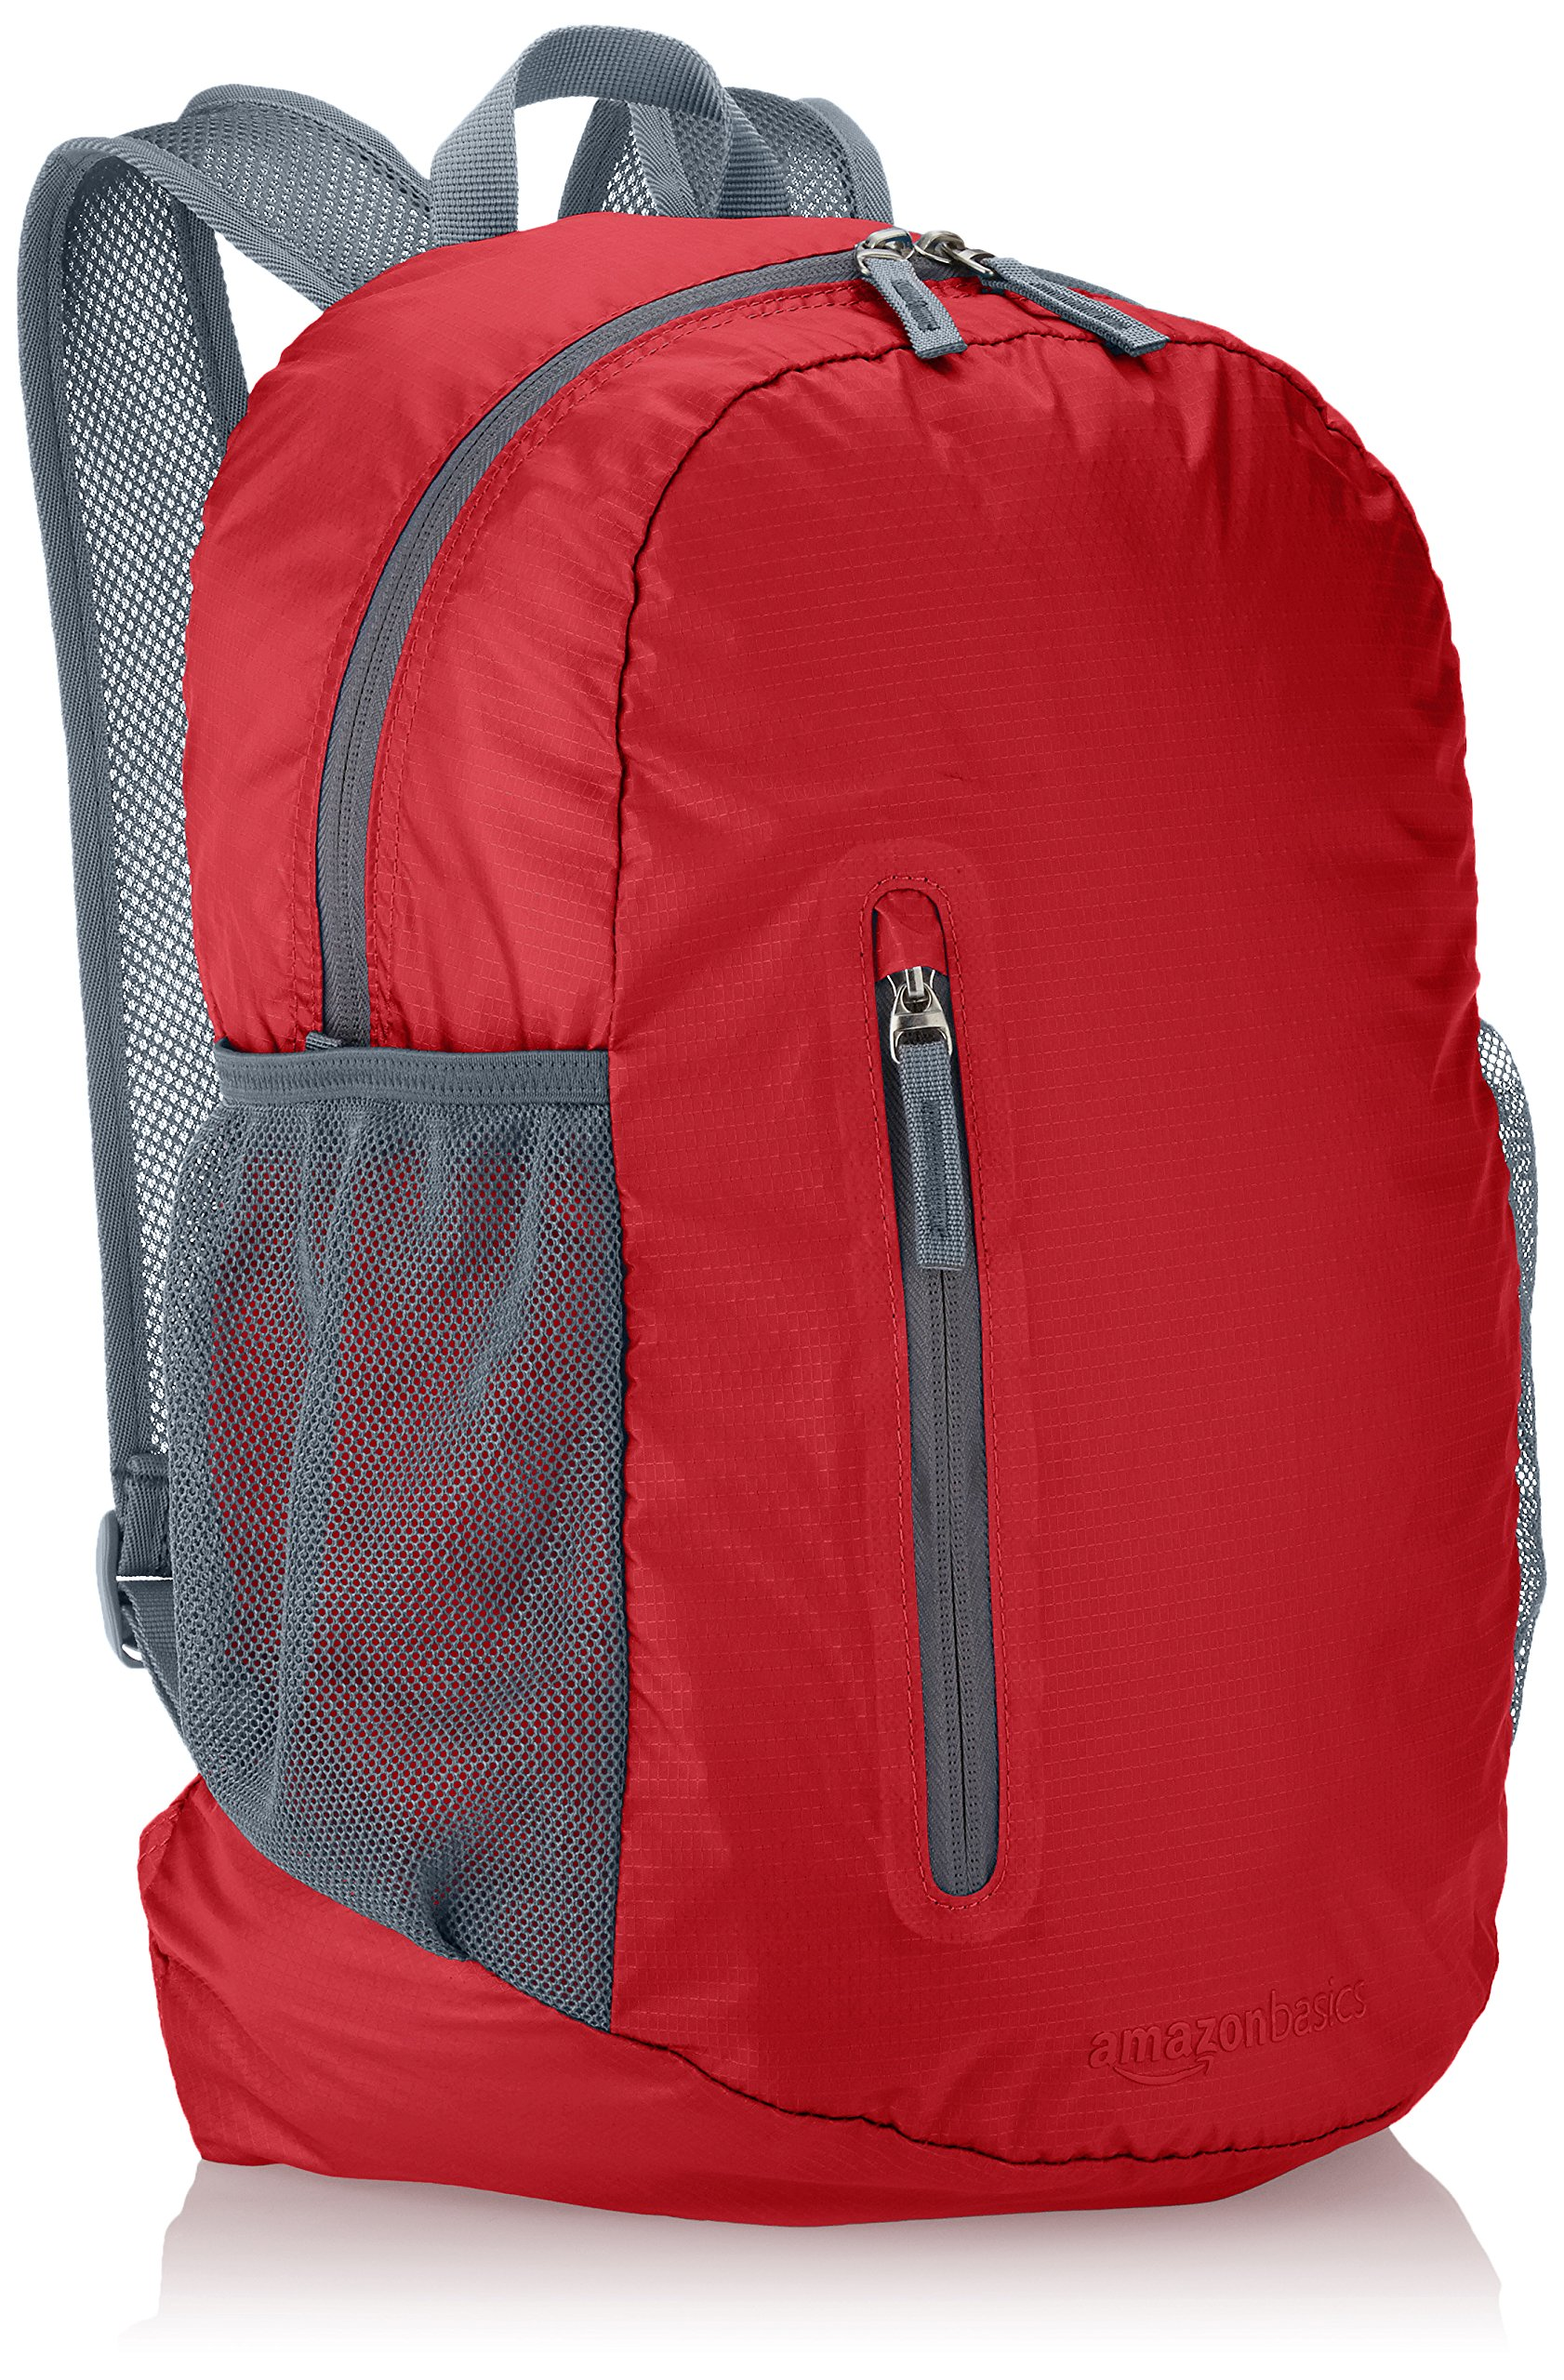 AmazonBasics Lightweight Packable Hiking Travel Day Pack Backpack - 17.5 x 17.5 x 11.5 Inches, 25 Liter, Red by AmazonBasics